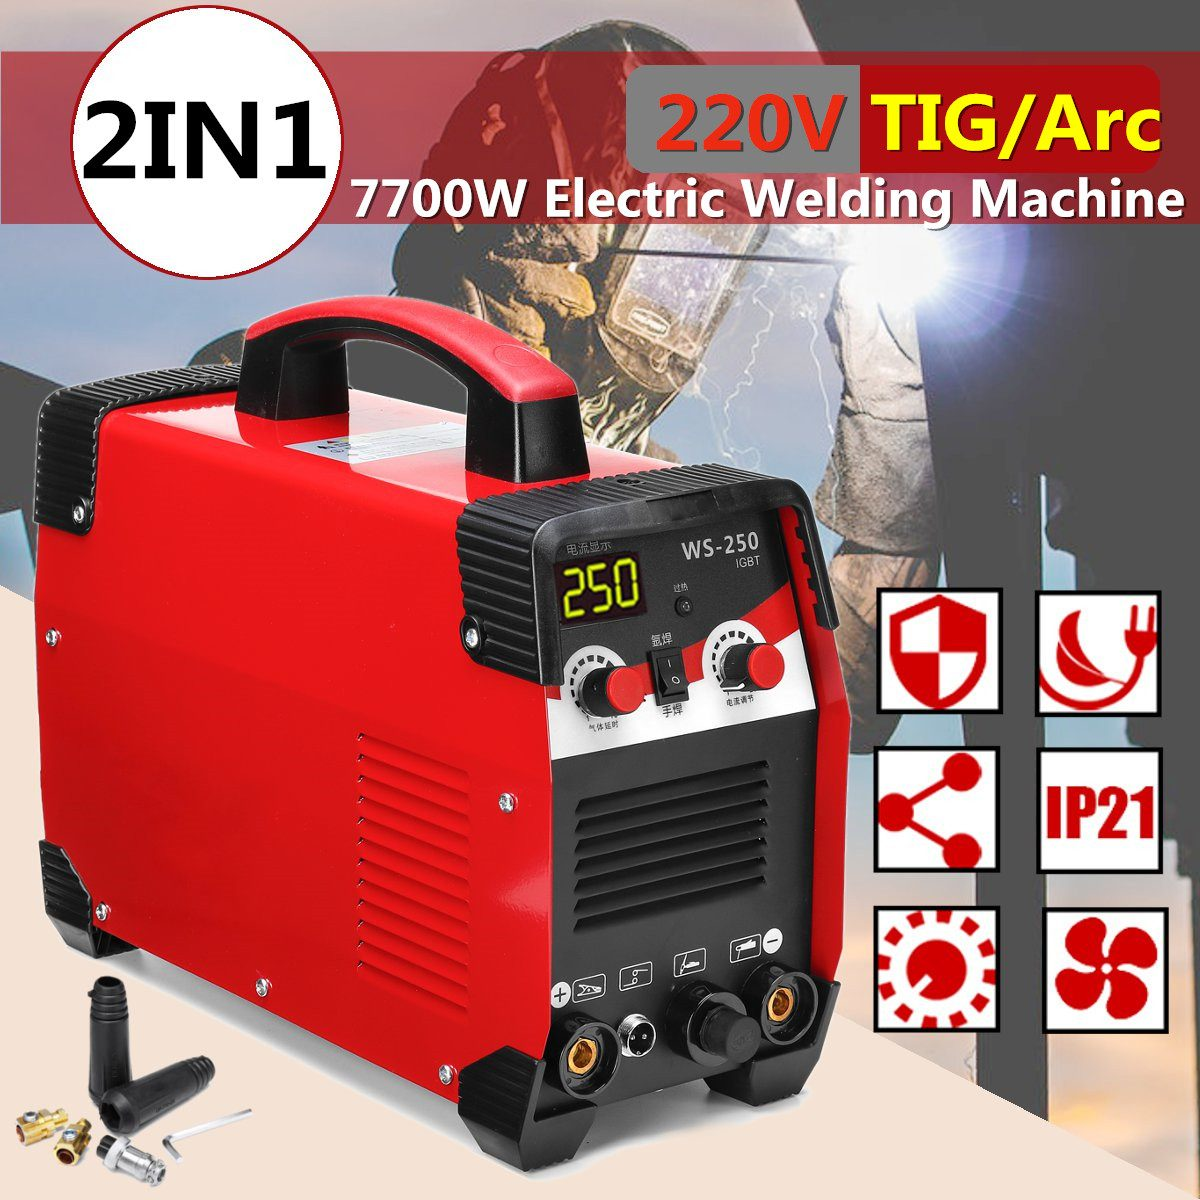 220V 7700W 20-250A 2IN1 TIG/ARC Electric Welding Machine MMA IGBT STICK Inverter For Welding Working And Electric Working